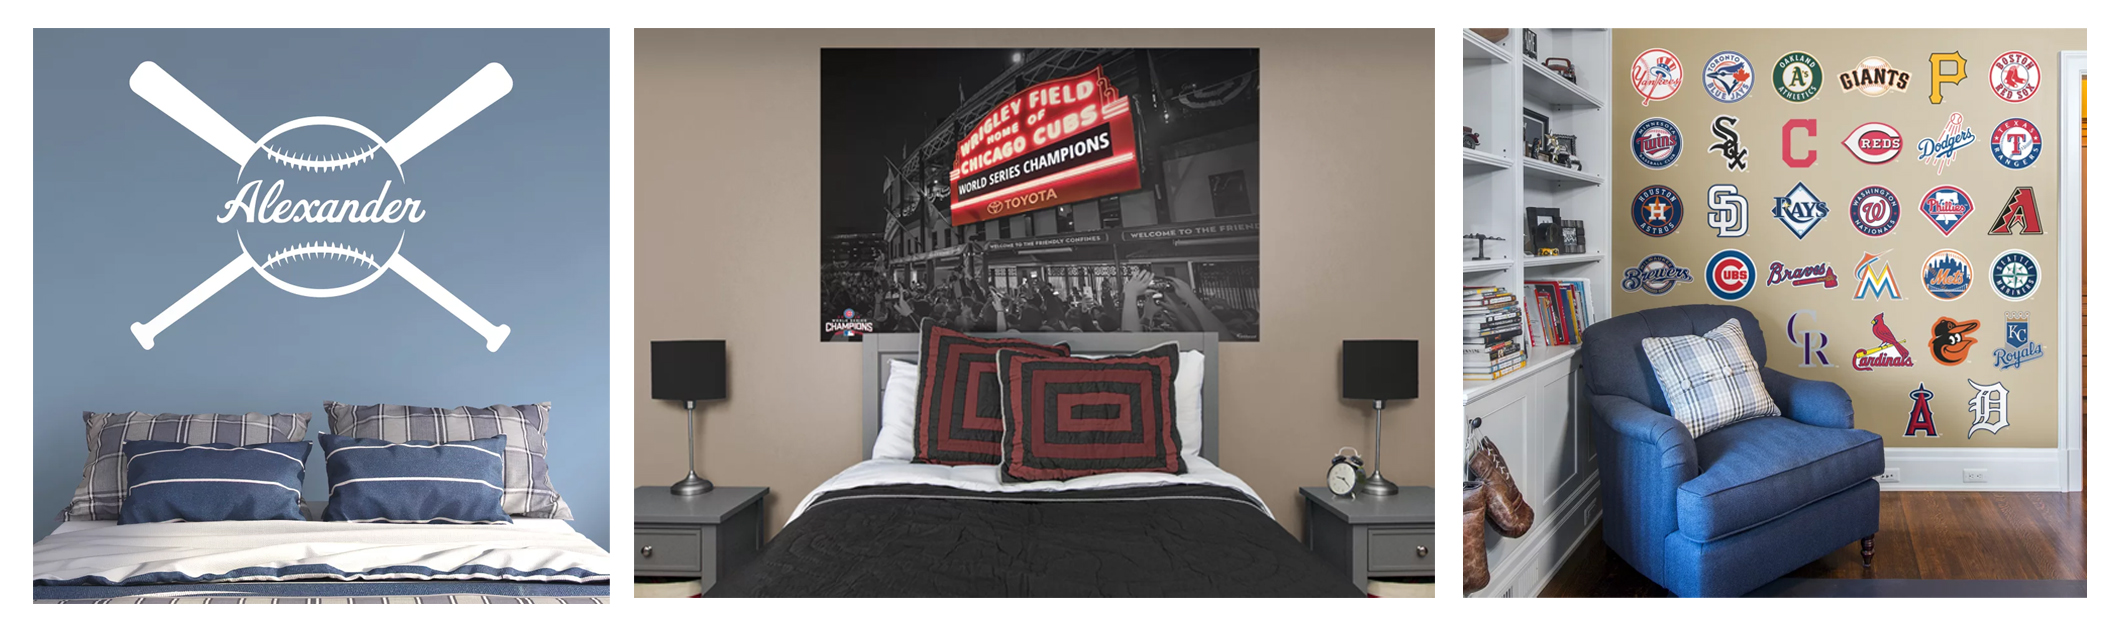 fathead wall decals banner2